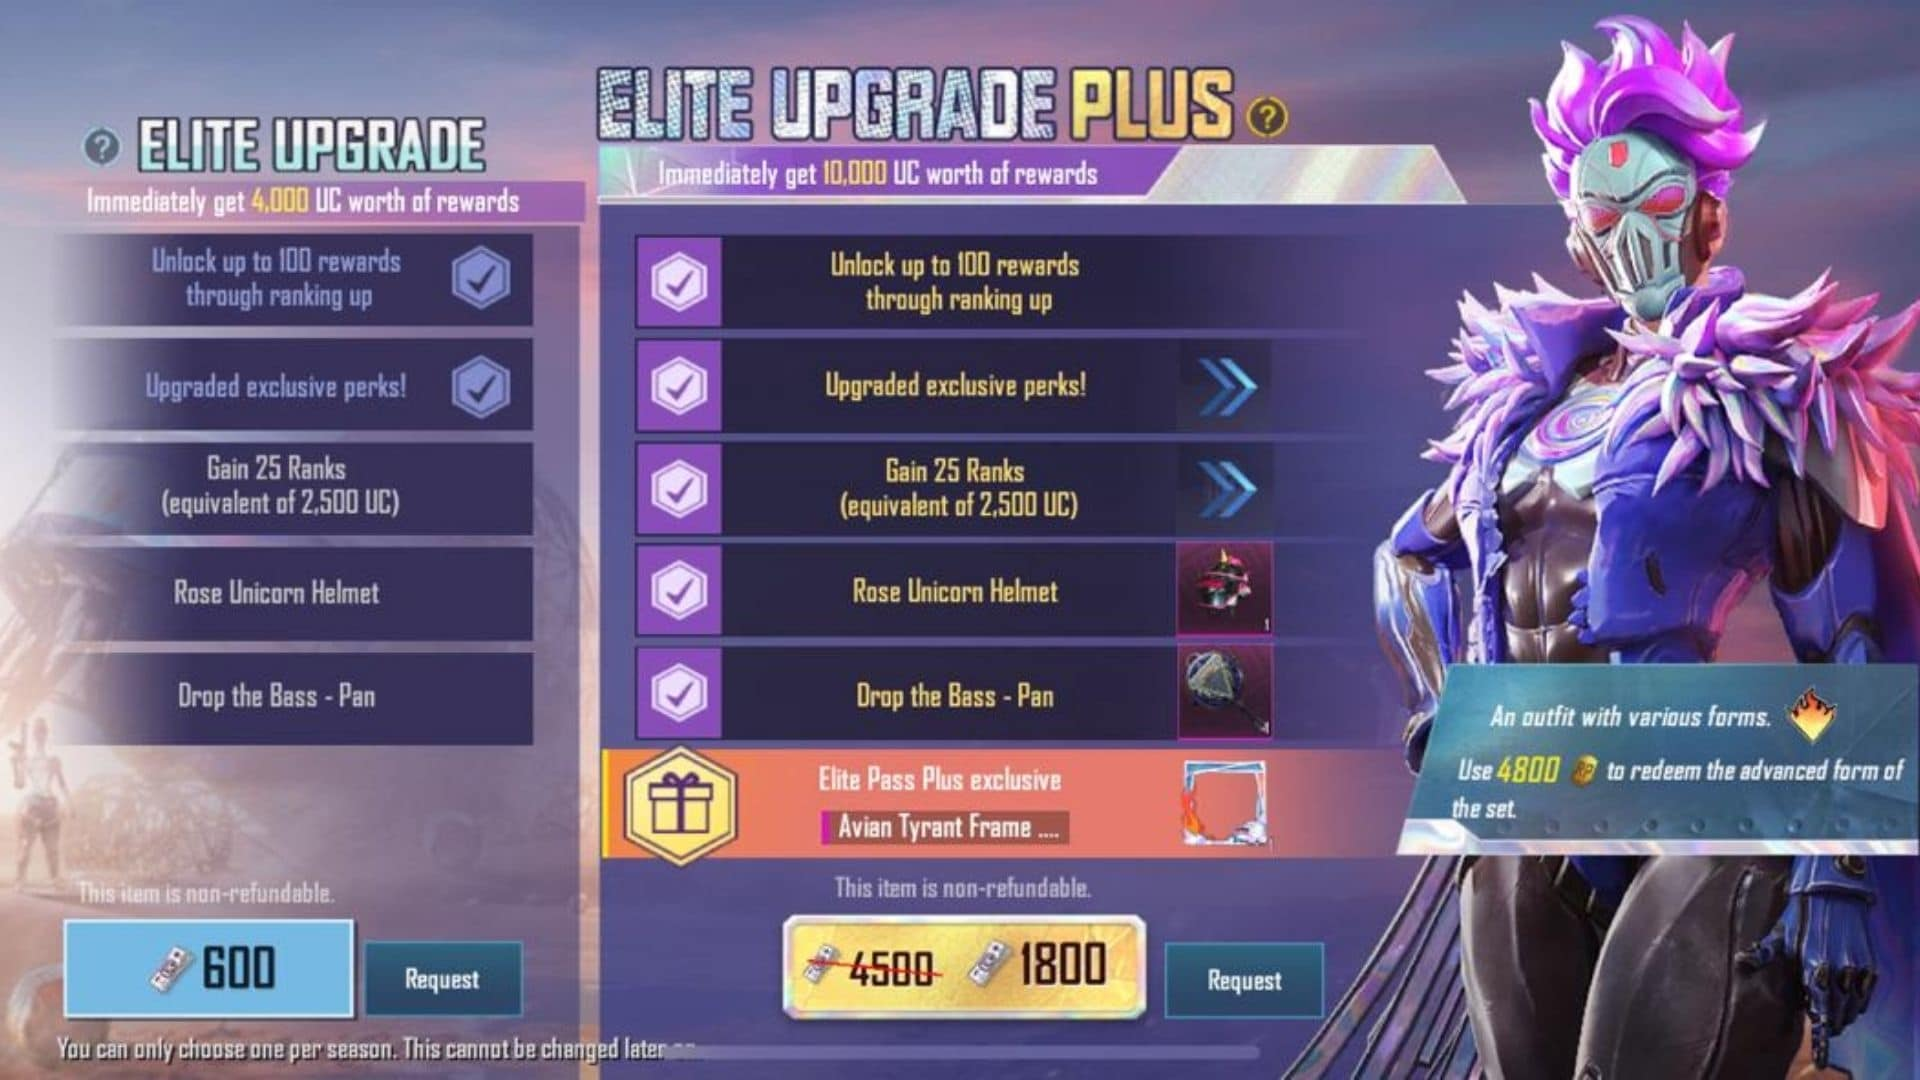 Players can upgrade to the Elite Royale Pass by spending UC.